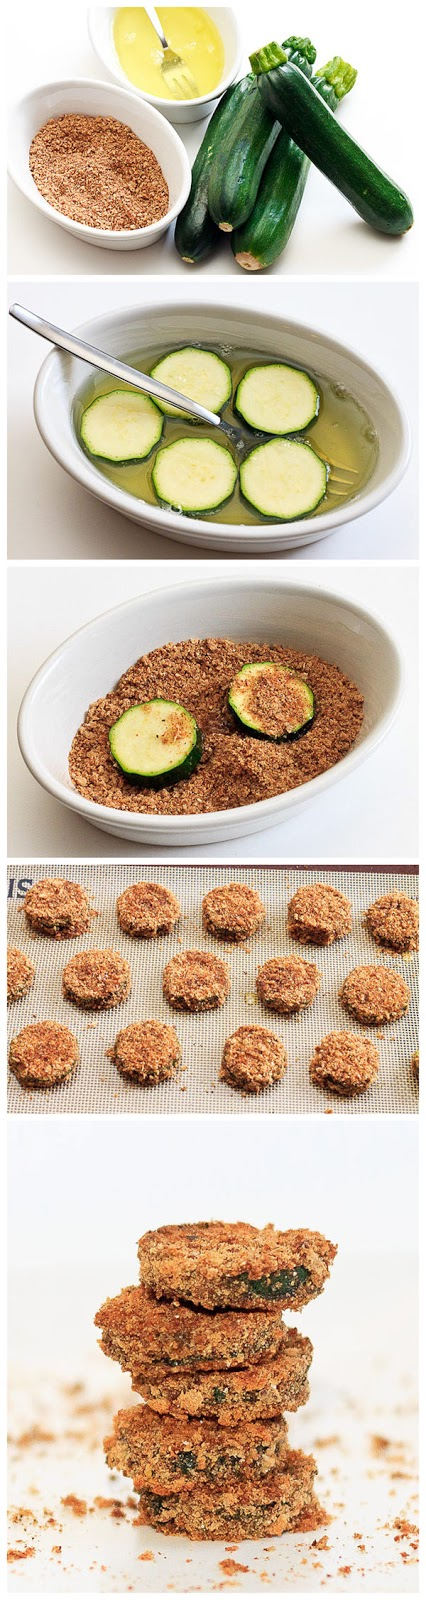 Crunchy-Oven-Baked-Zucchini-Recipe